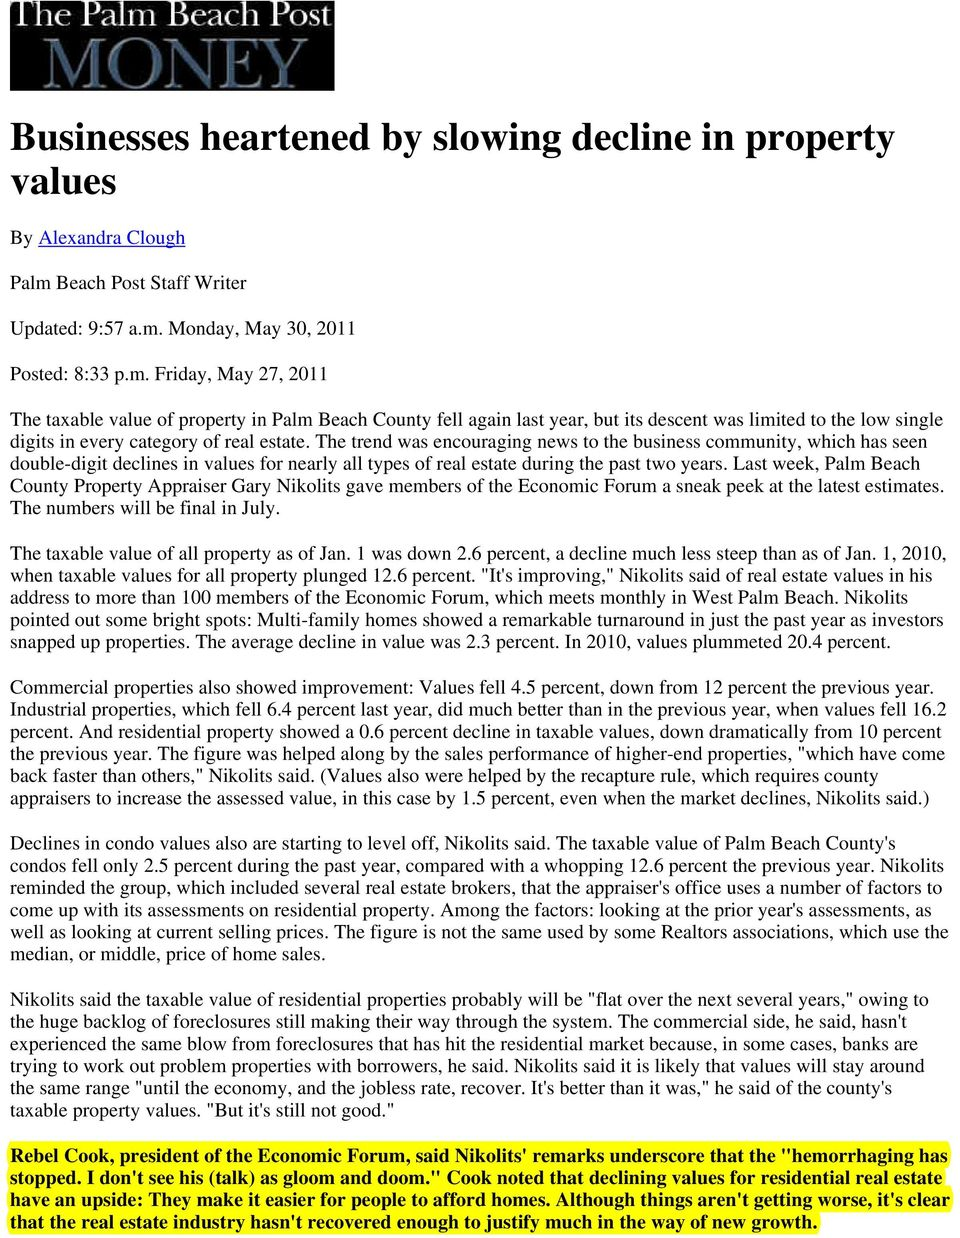 Friday, May 27, 2011 The taxable value of property in Palm Beach County fell again last year, but its descent was limited to the low single digits in every category of real estate.